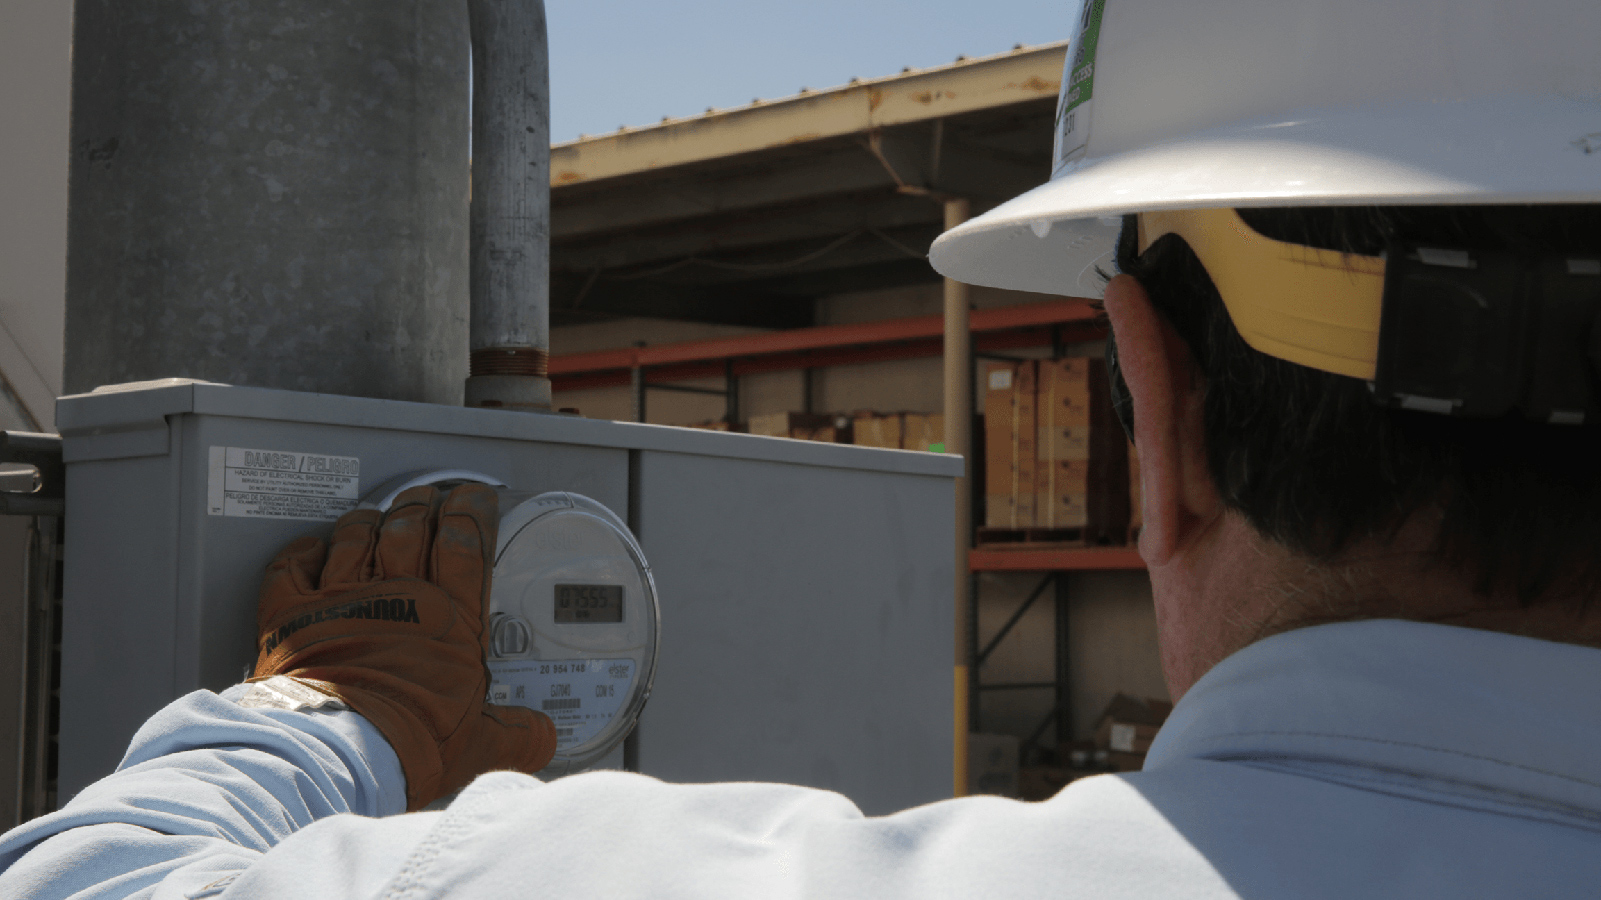 APS employee reading a meter.